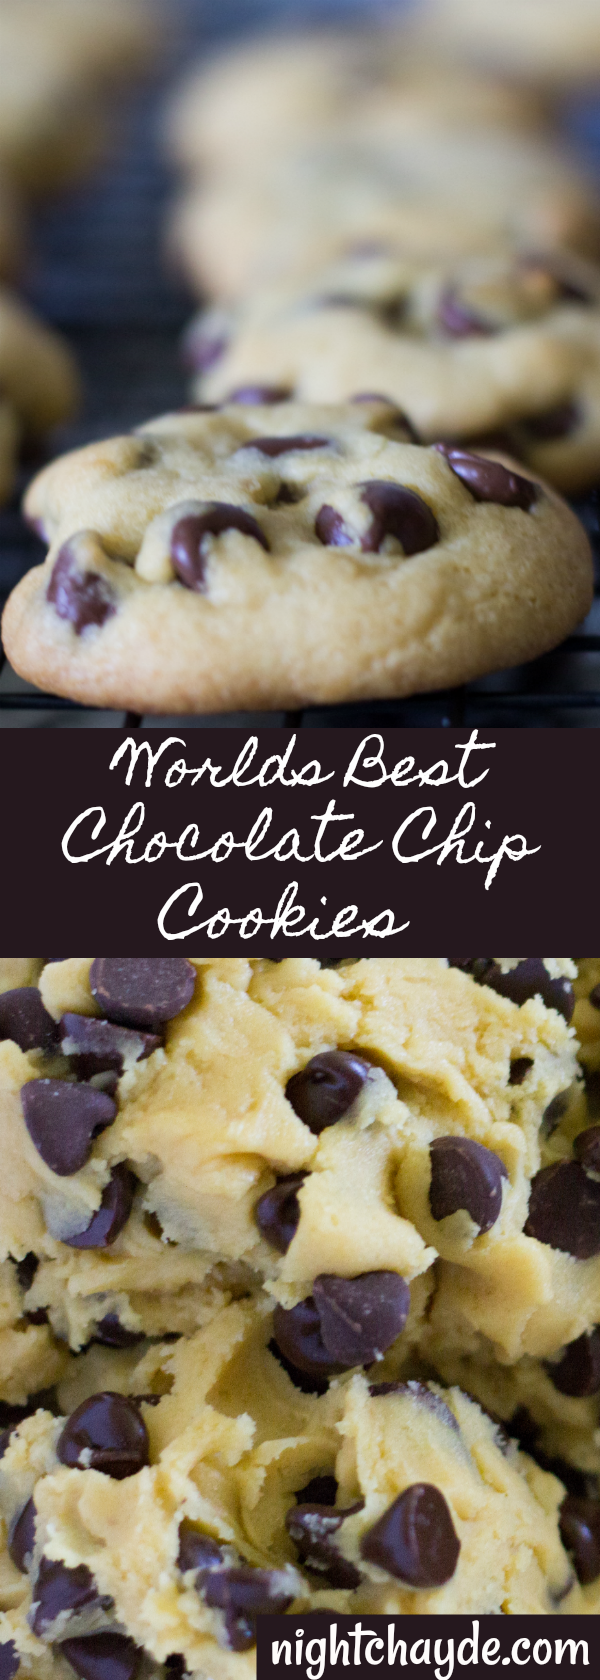 The Worlds Best Chocolate Chip Cookie